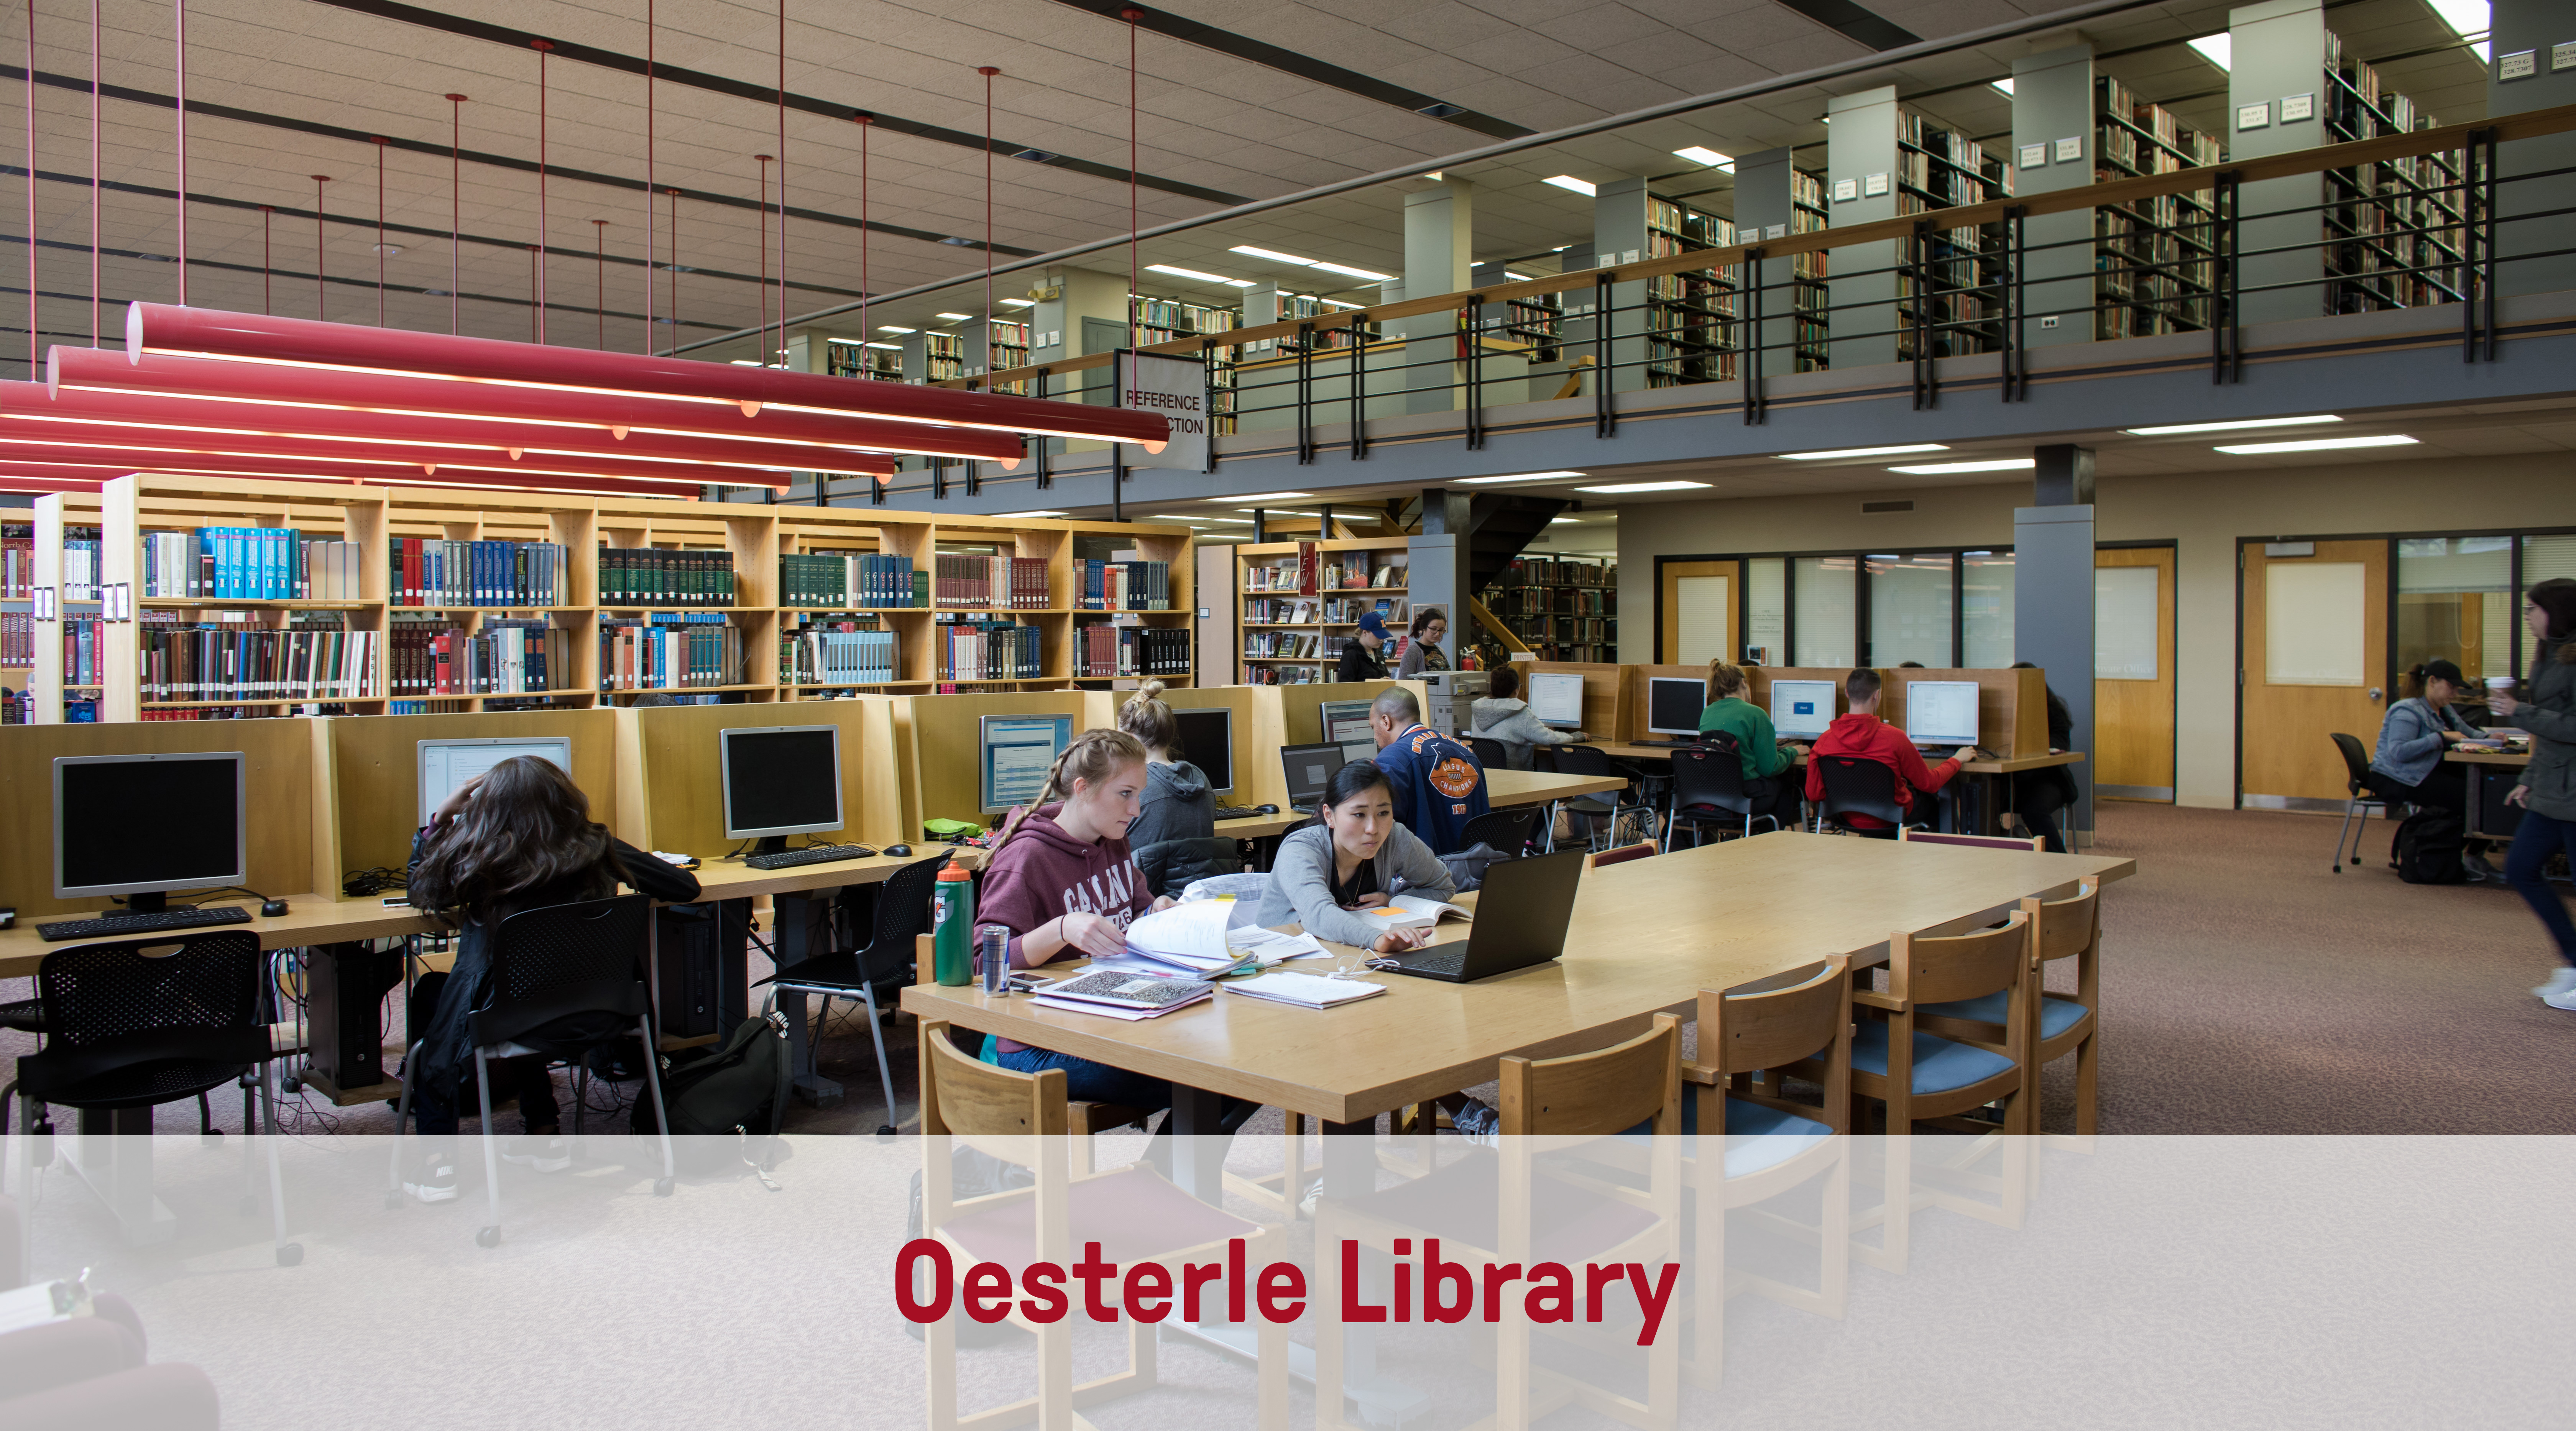 Oesterle Library